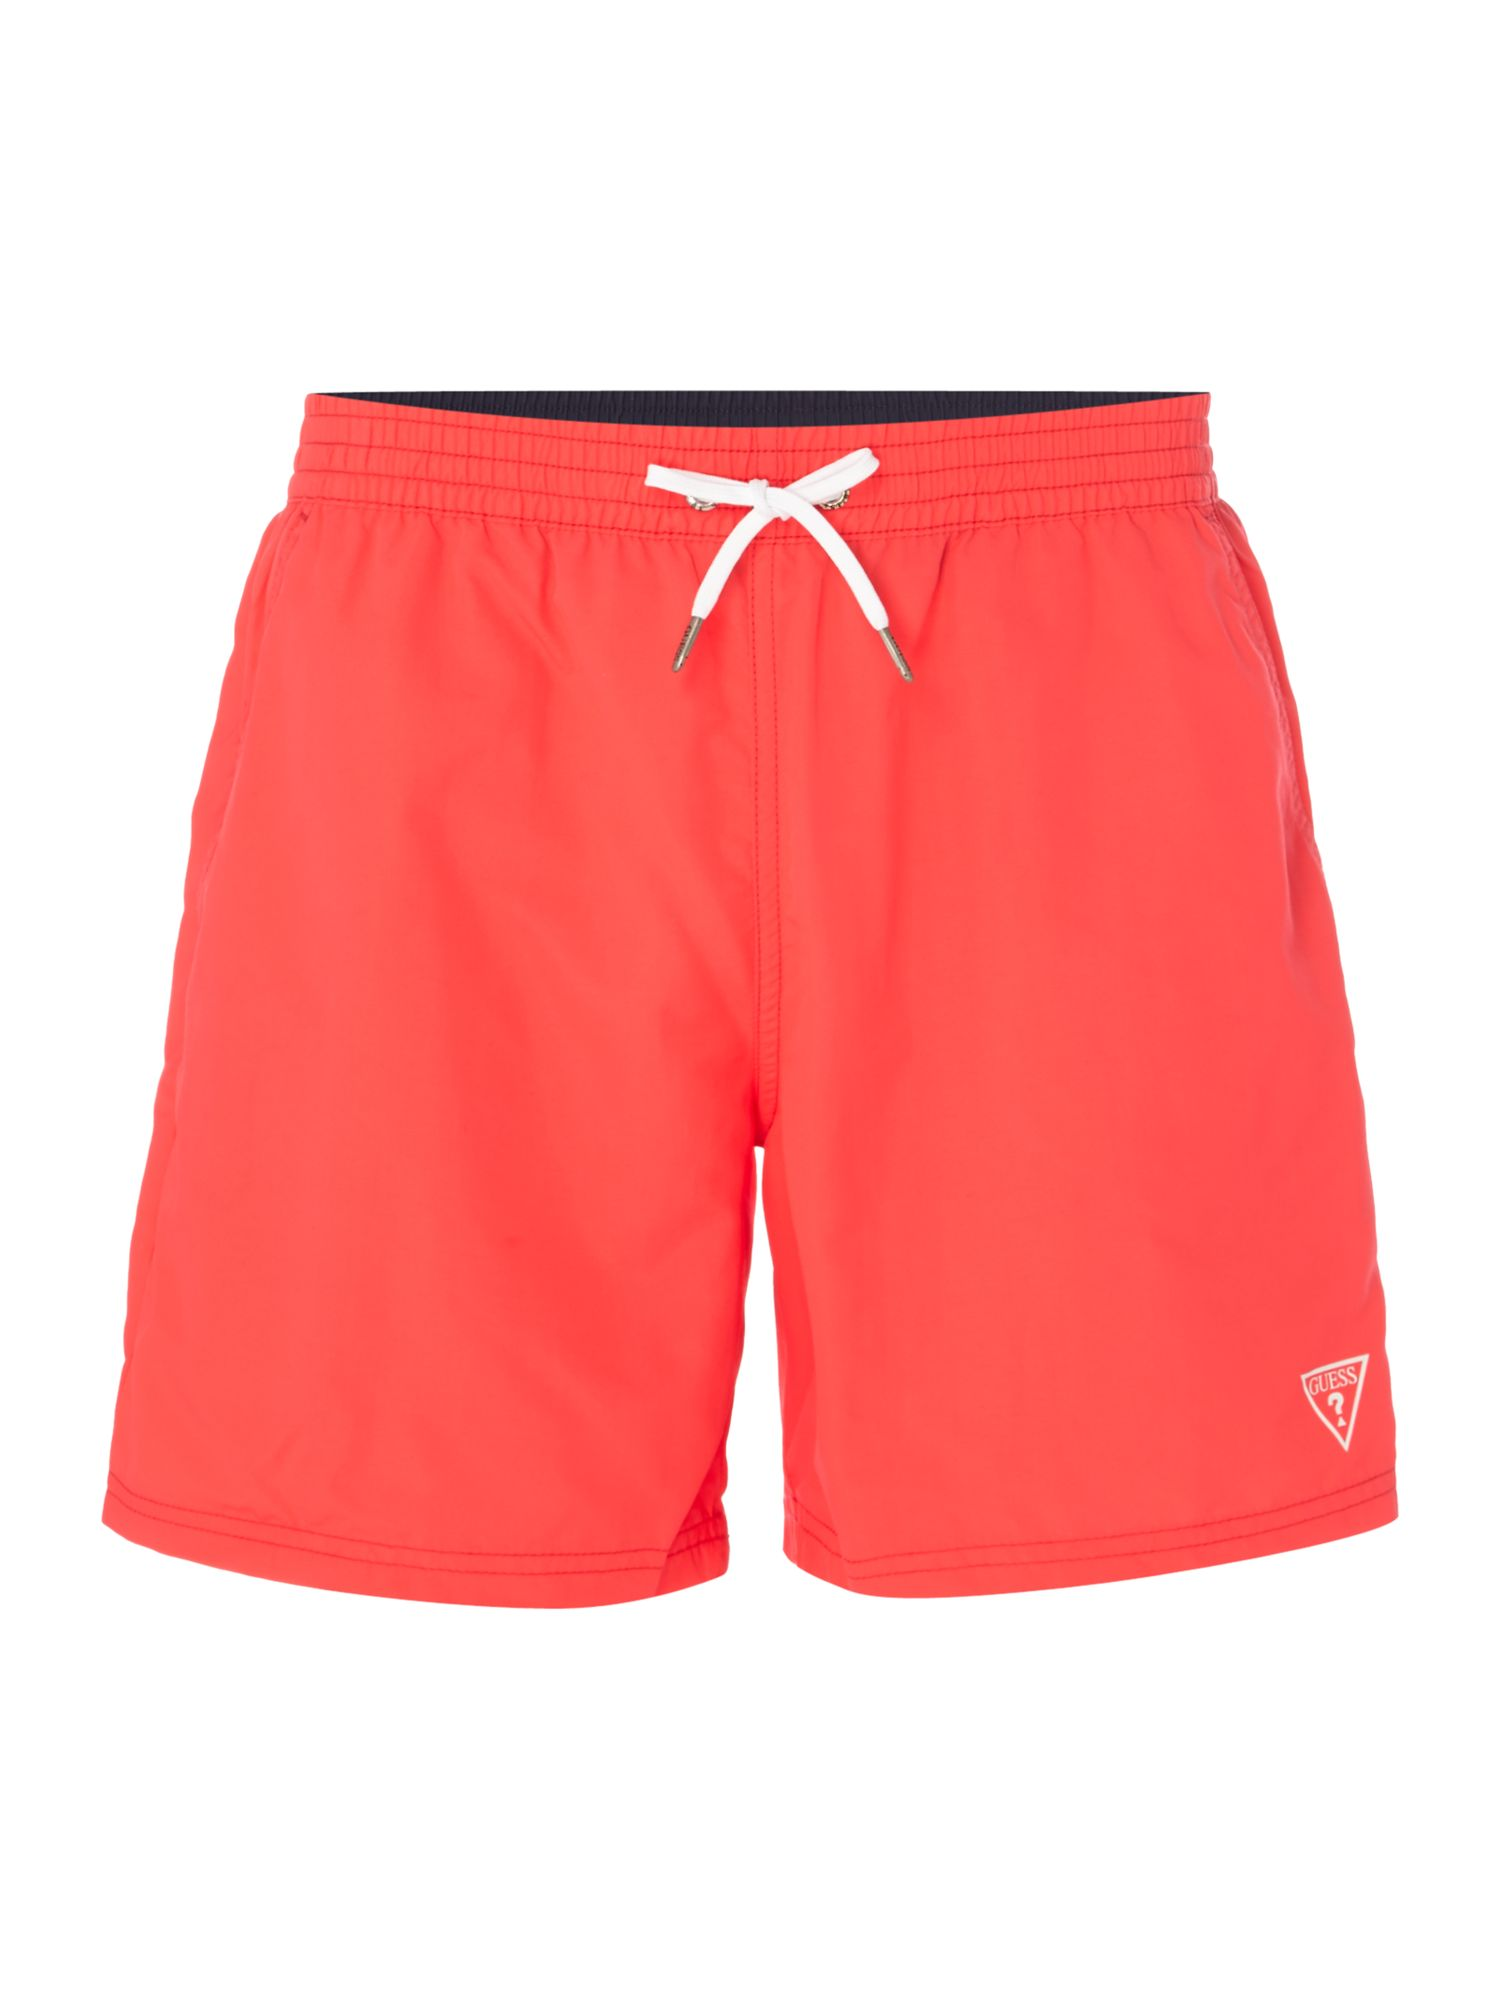 Men's Guess Mid Length Logo Swim Shorts, Pink